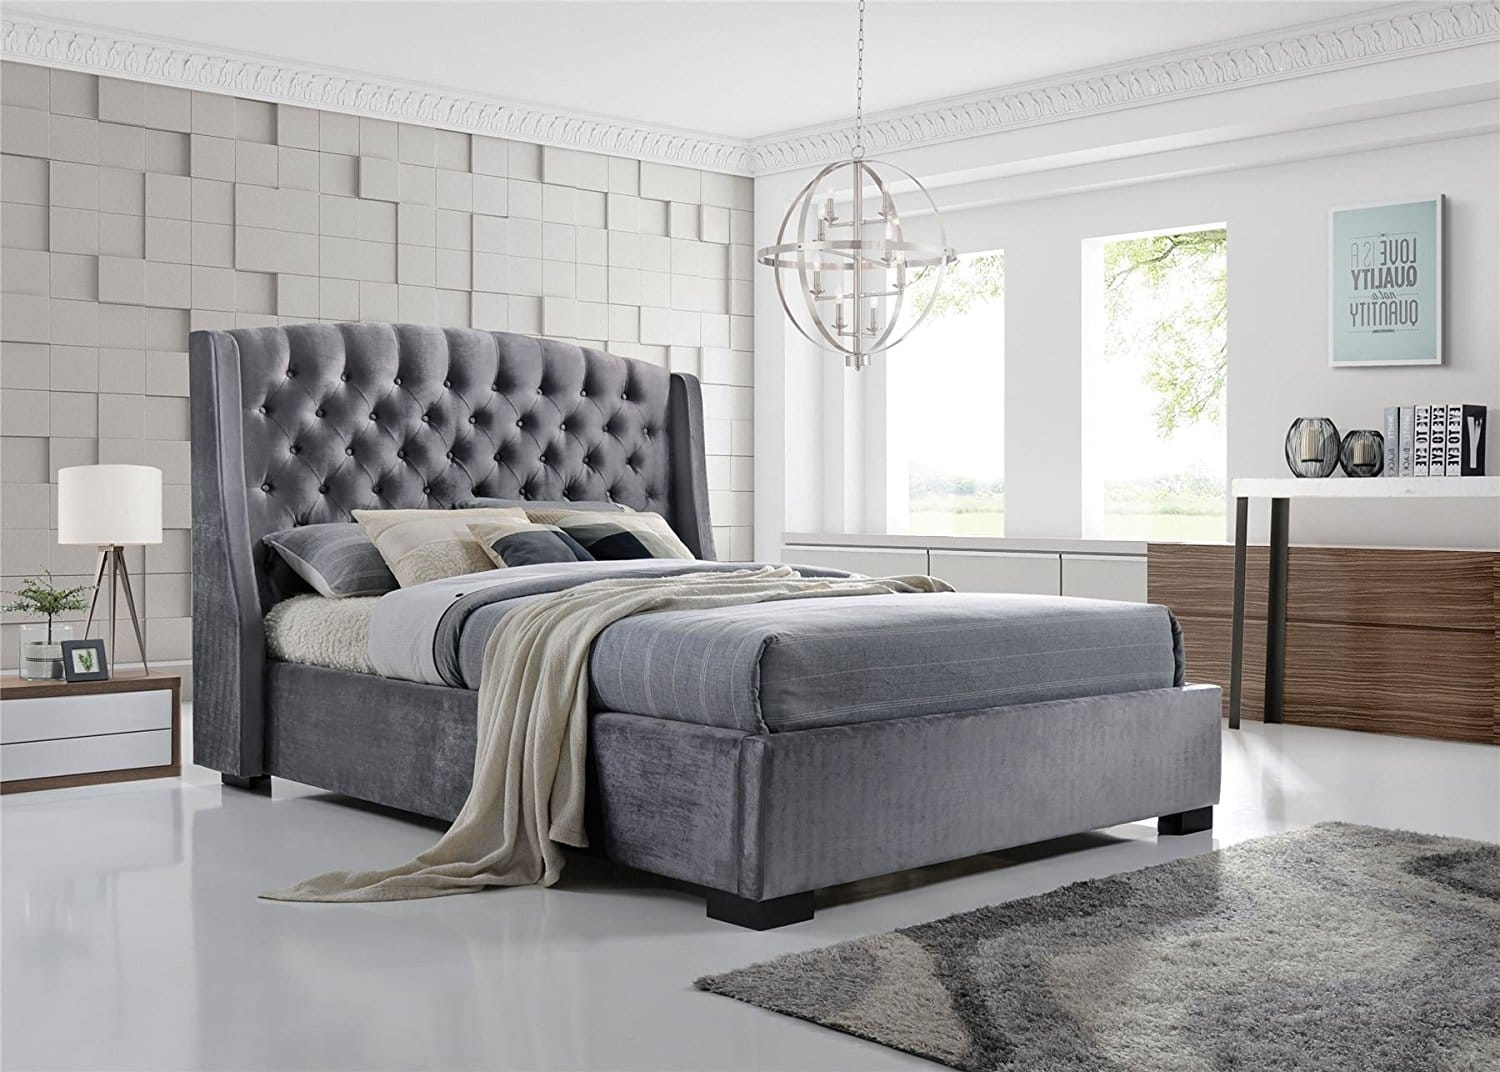 Full Size of Graues Bett Passende Wandfarbe Kombinieren Bettlaken Waschen 120x200 Ikea Brando Wing Back Chesterfield King Size Bettrahmen 5ft Bettkasten Massivholz Betten Bett Graues Bett